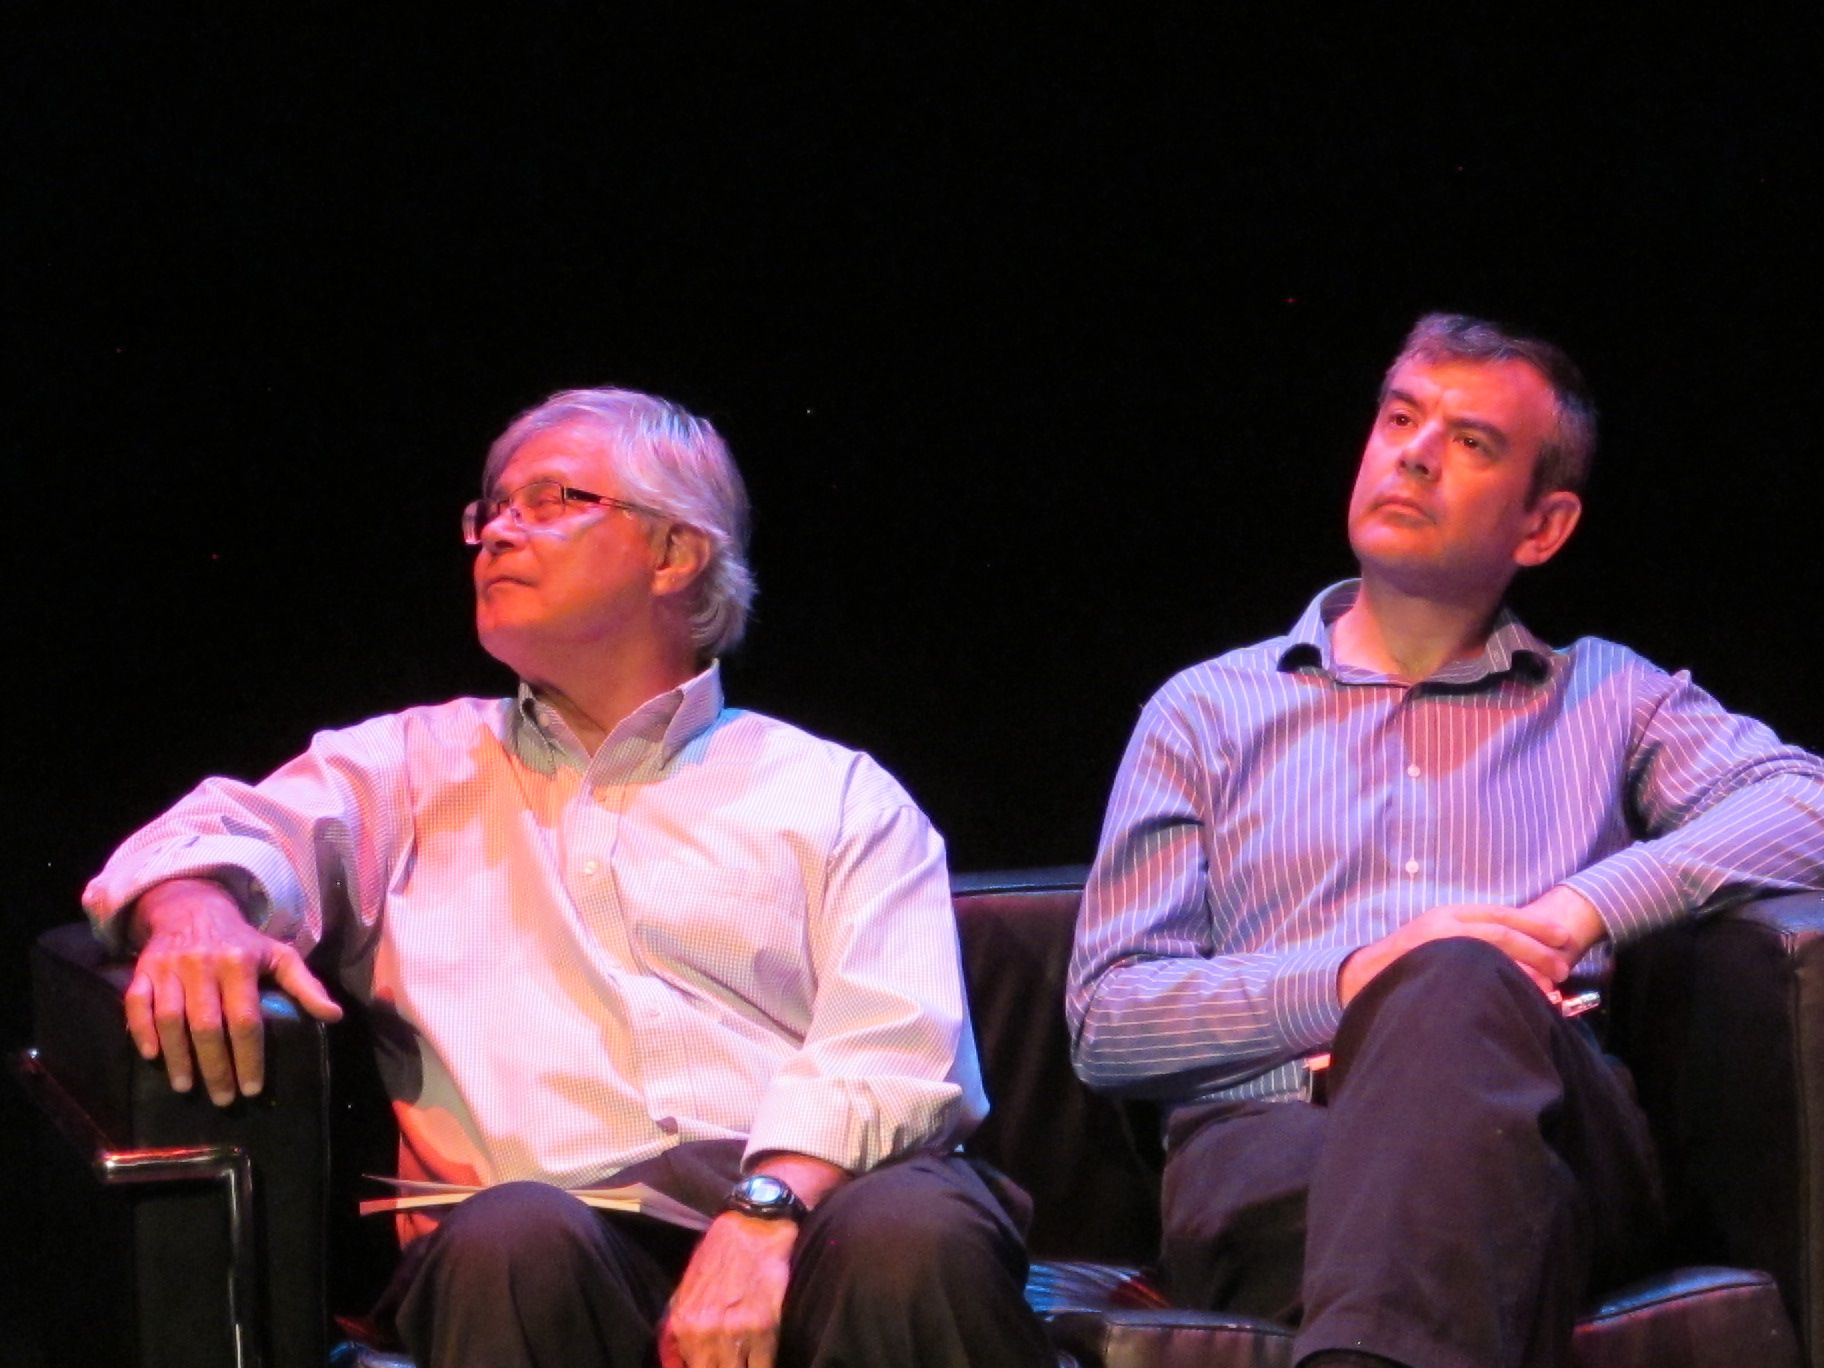 Ron Smith and British poet Michael Woods at the International Poetry Reading, Gerard Manley Hopkins Festival, Newbridge College, Ireland, July 2014